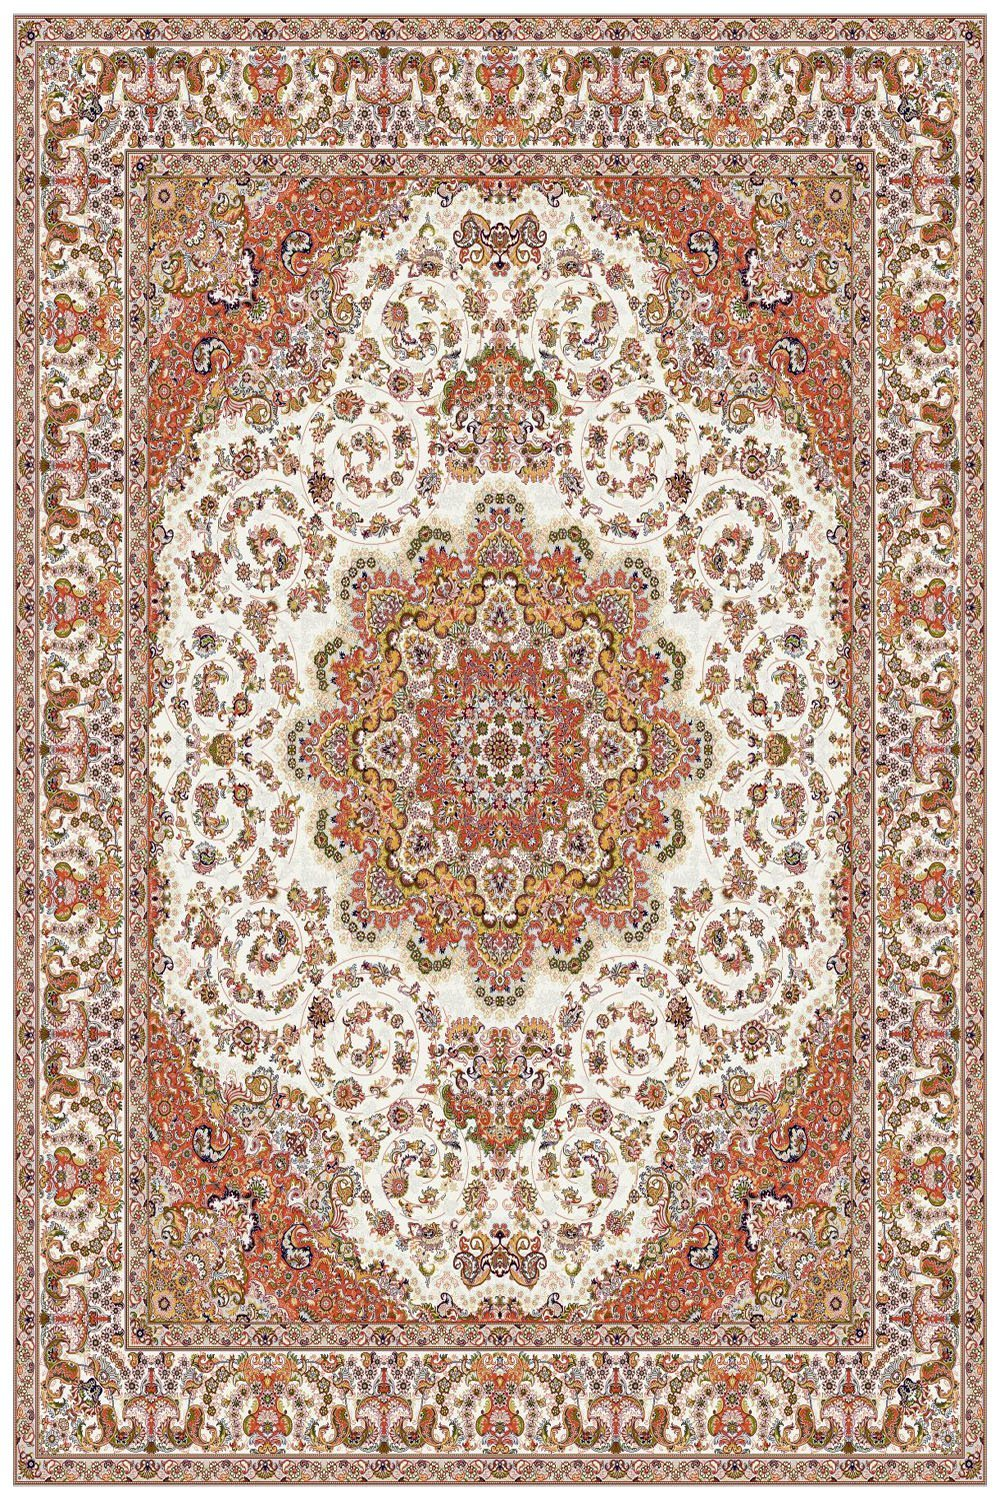 Area Rugs - Persian Treasures - Shah - Cream